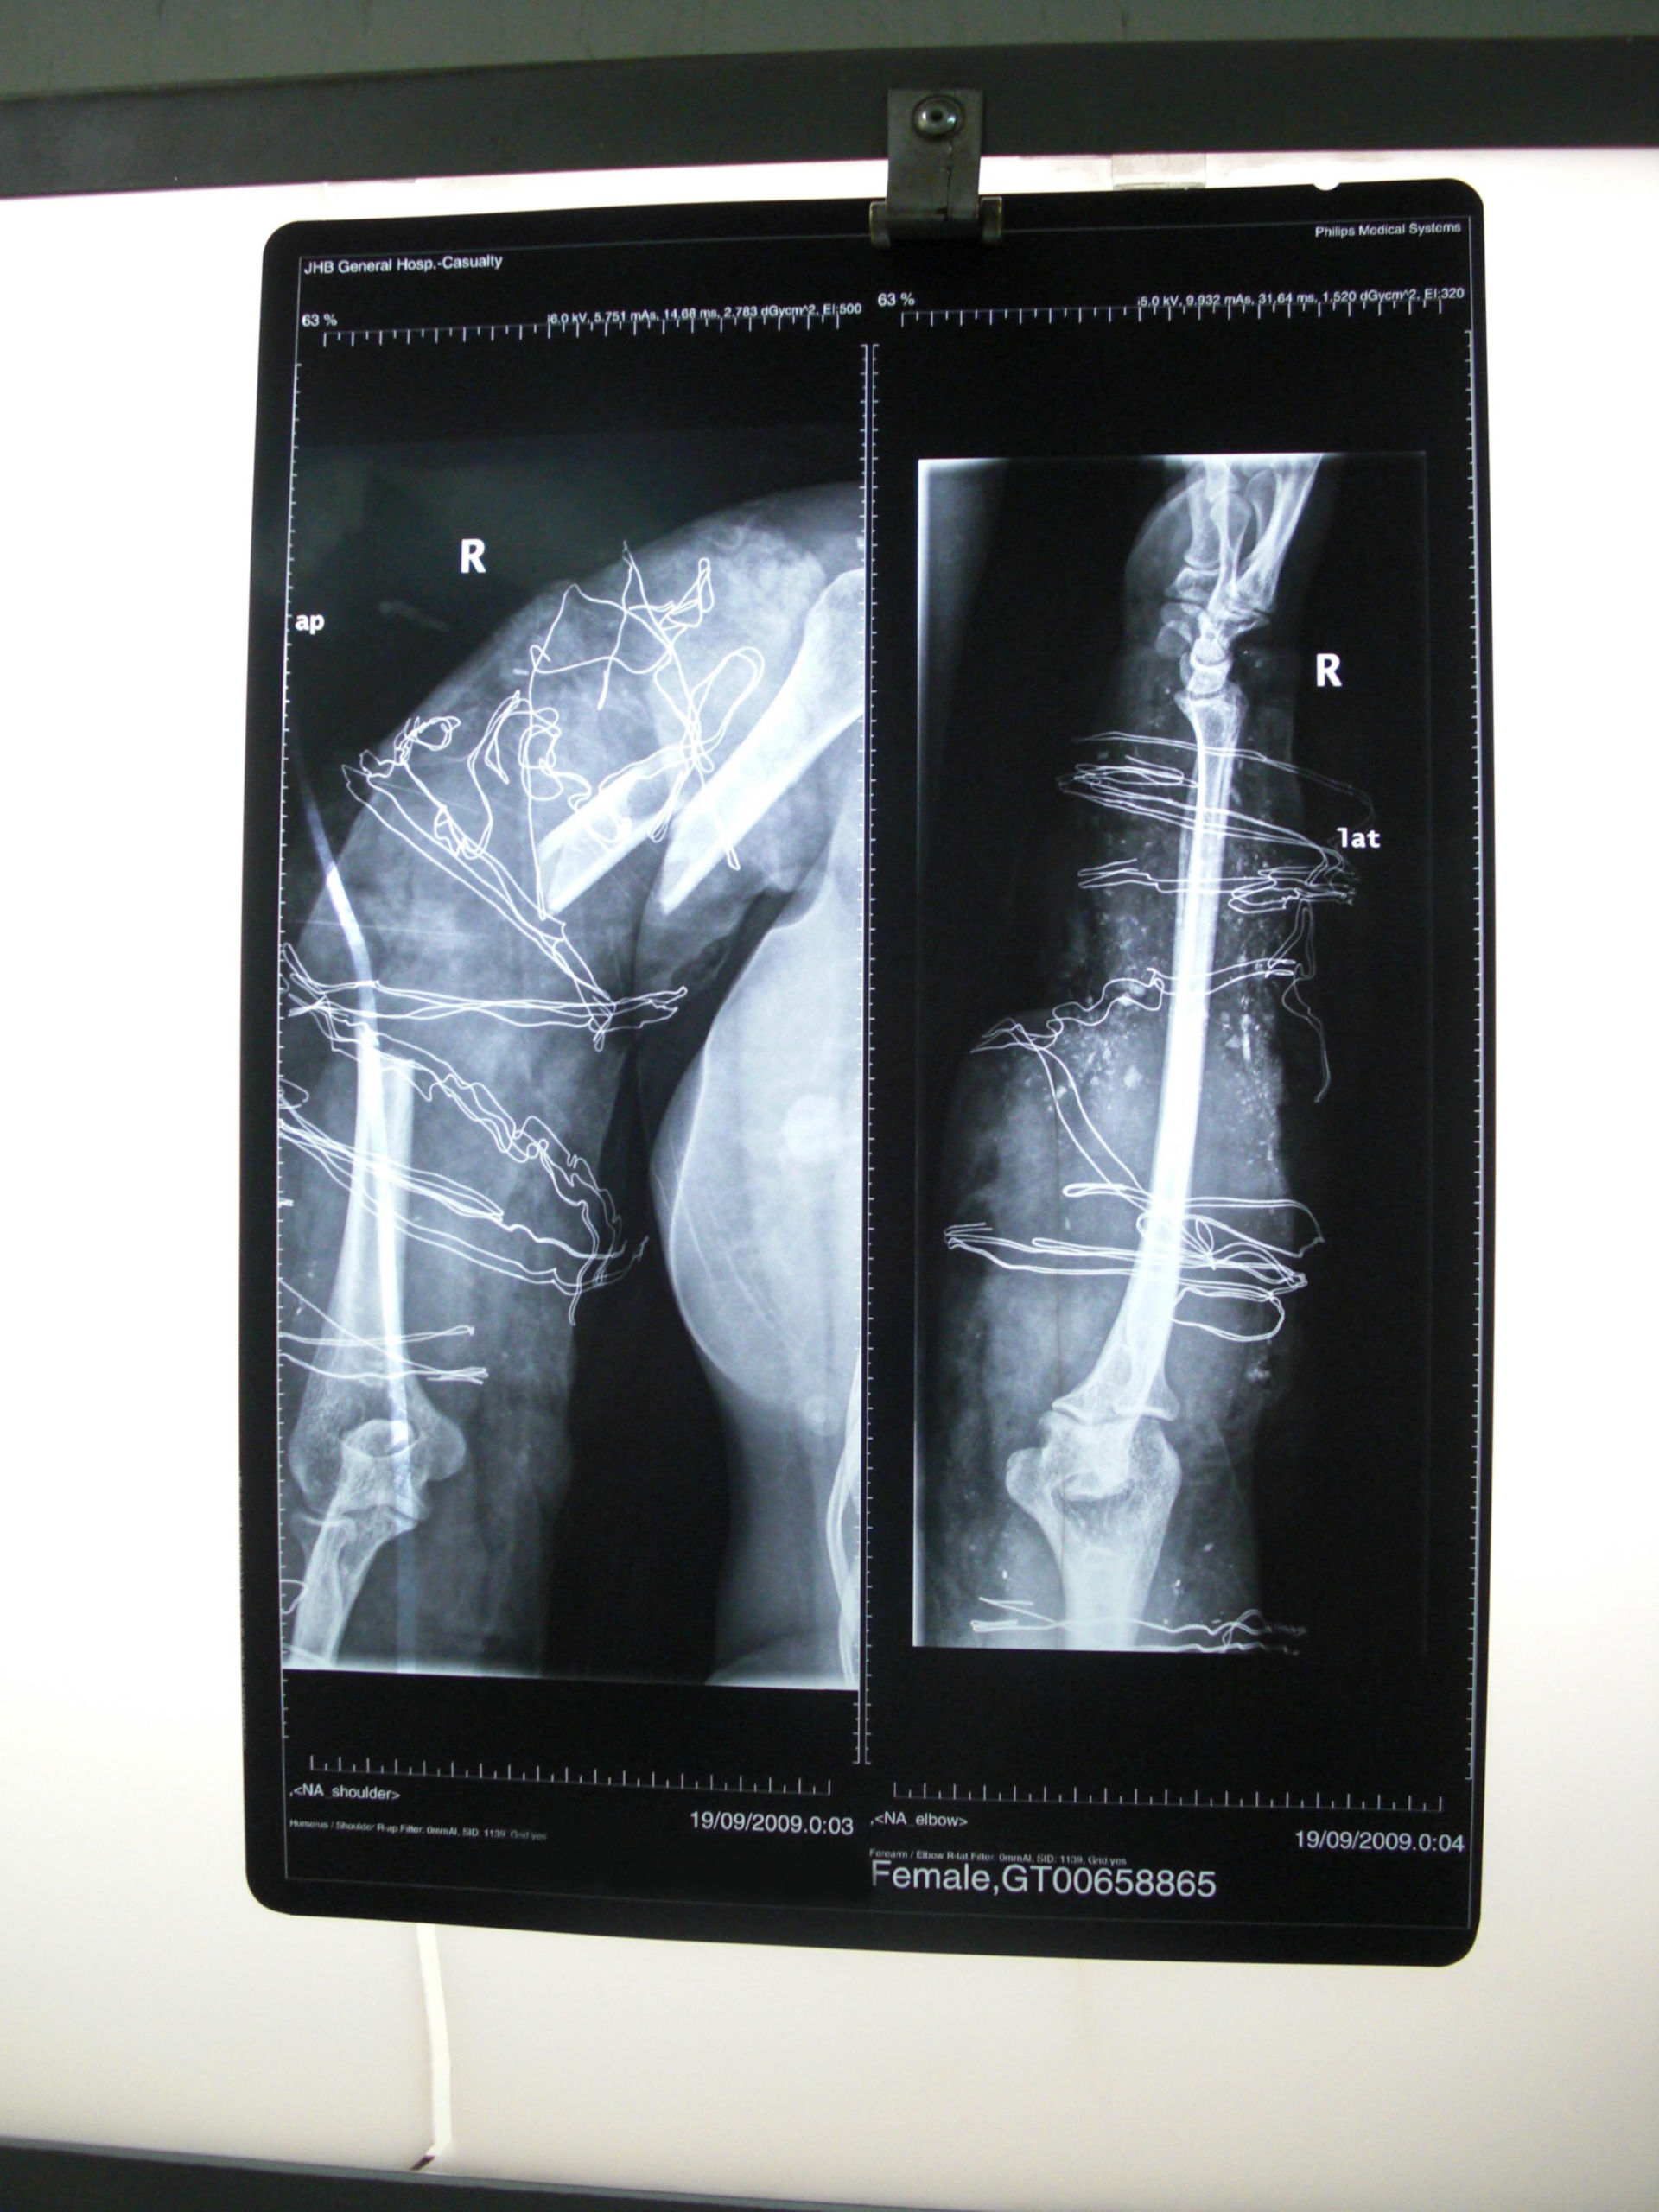 Comminuted fracture of the upper arm